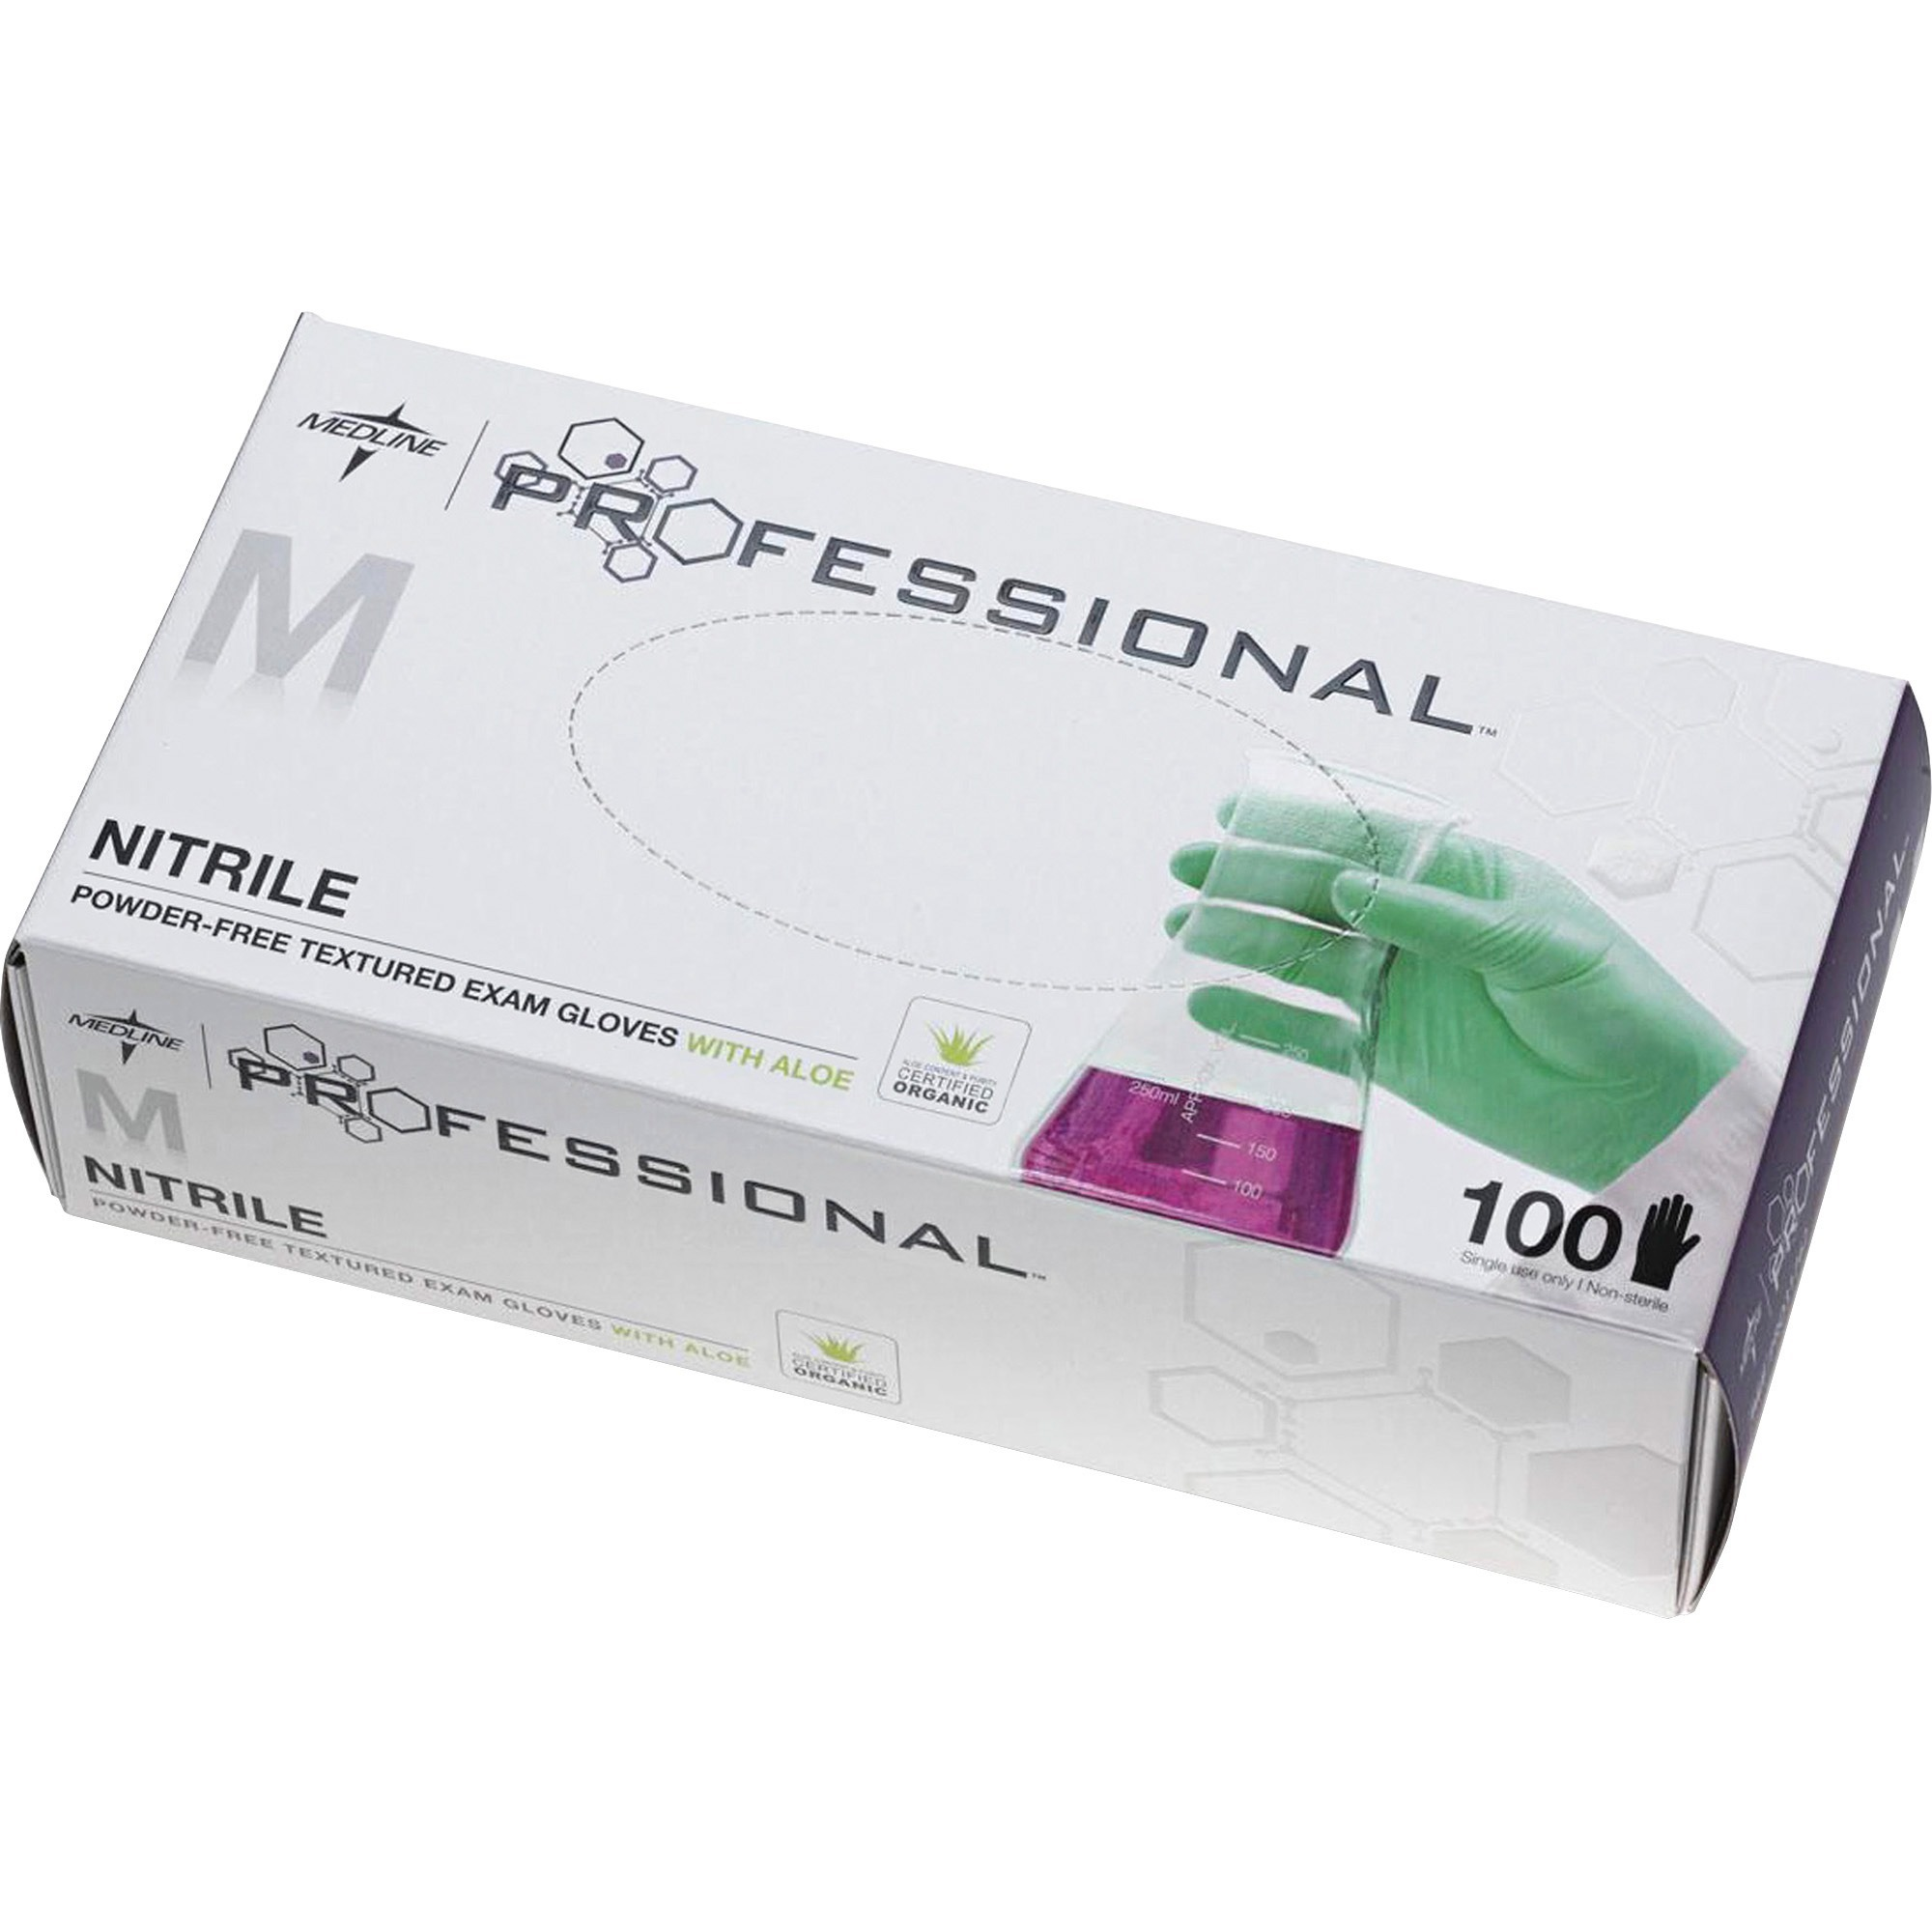 Medline, MIIPRO31762, Professional Series Aloetouch Gloves, 100 / Box, Green